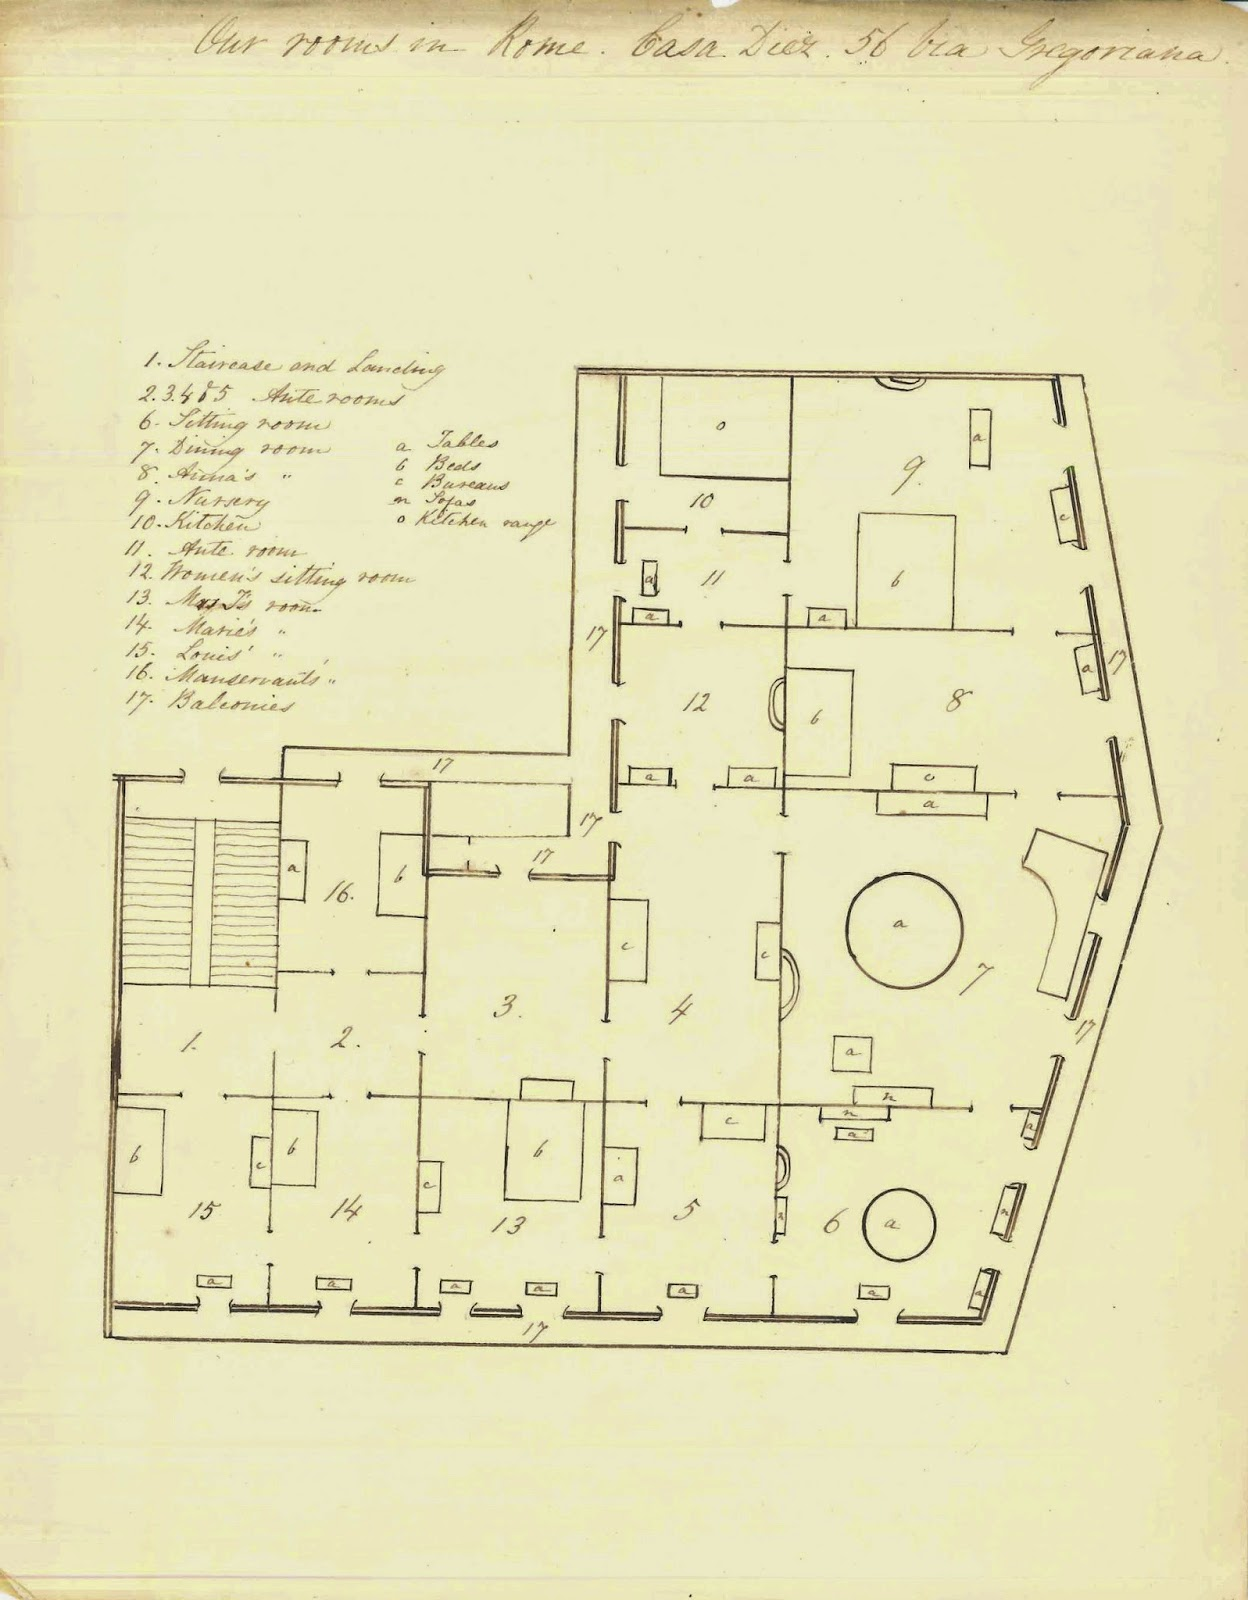 A hand-drawn floor plan.